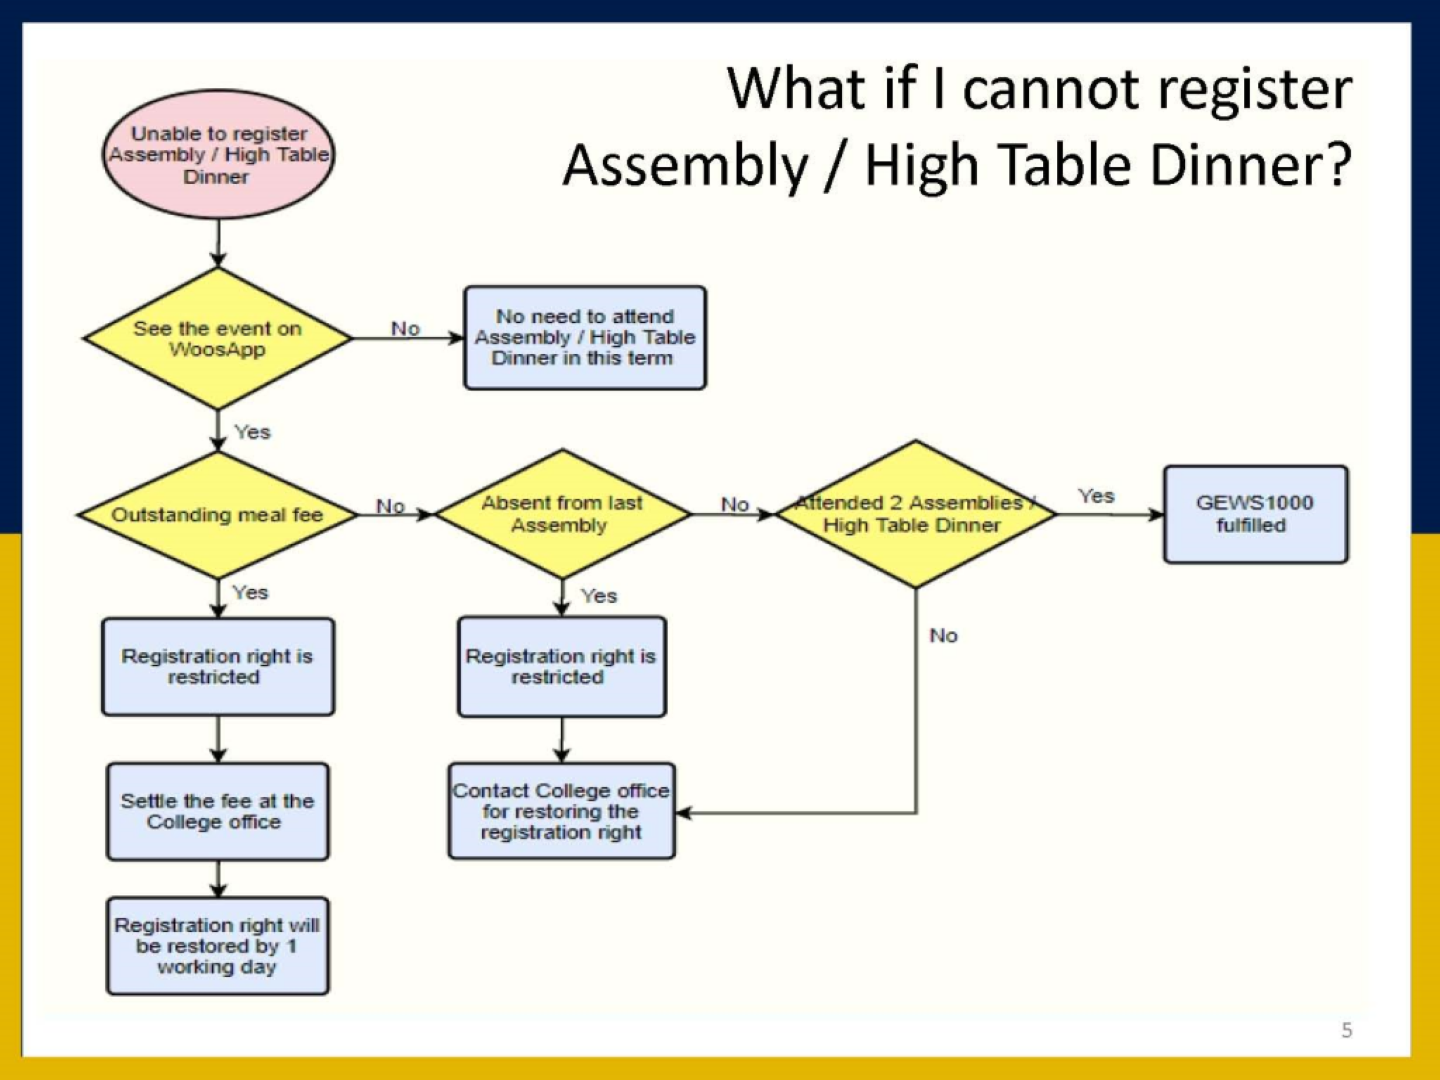 Unable to Register Assembly / High Table Dinner